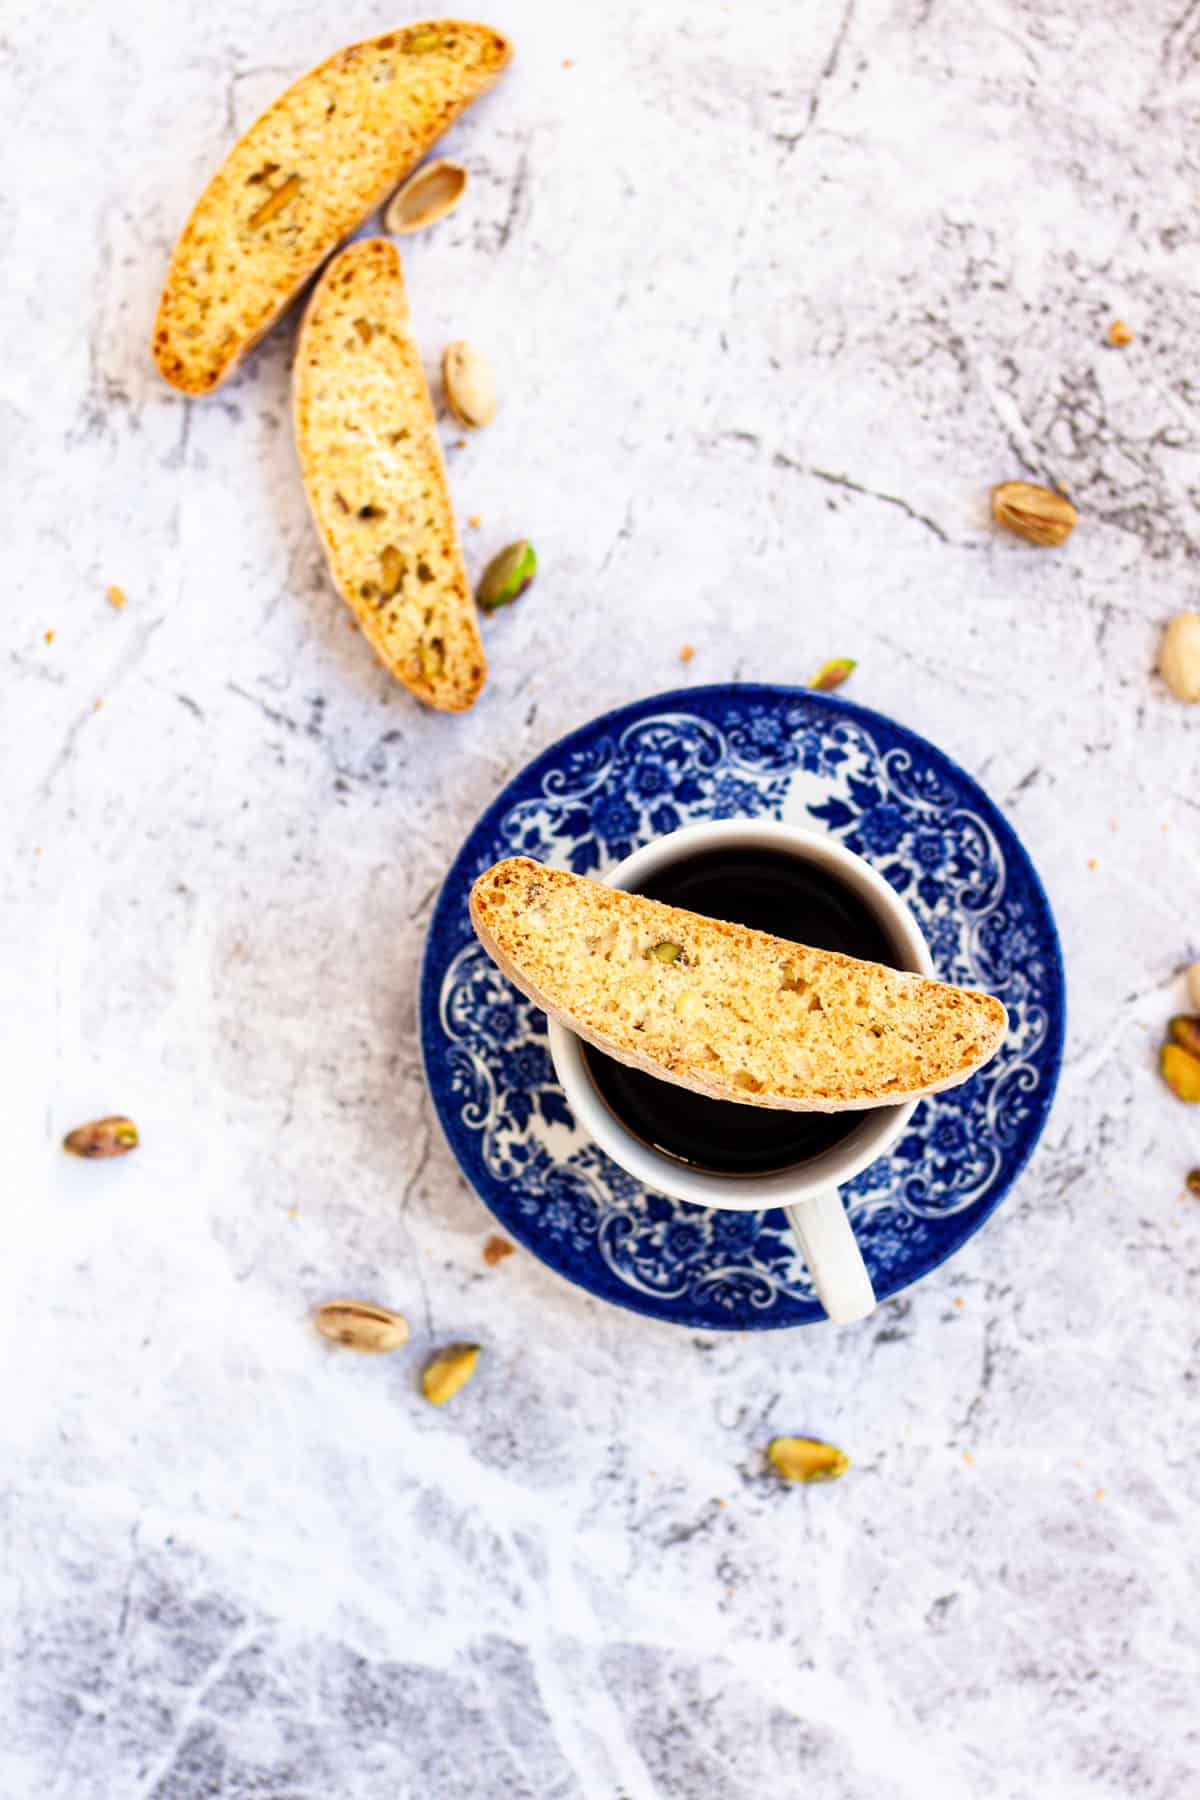 Pistachio Lemon Biscotti on a cup of coffee